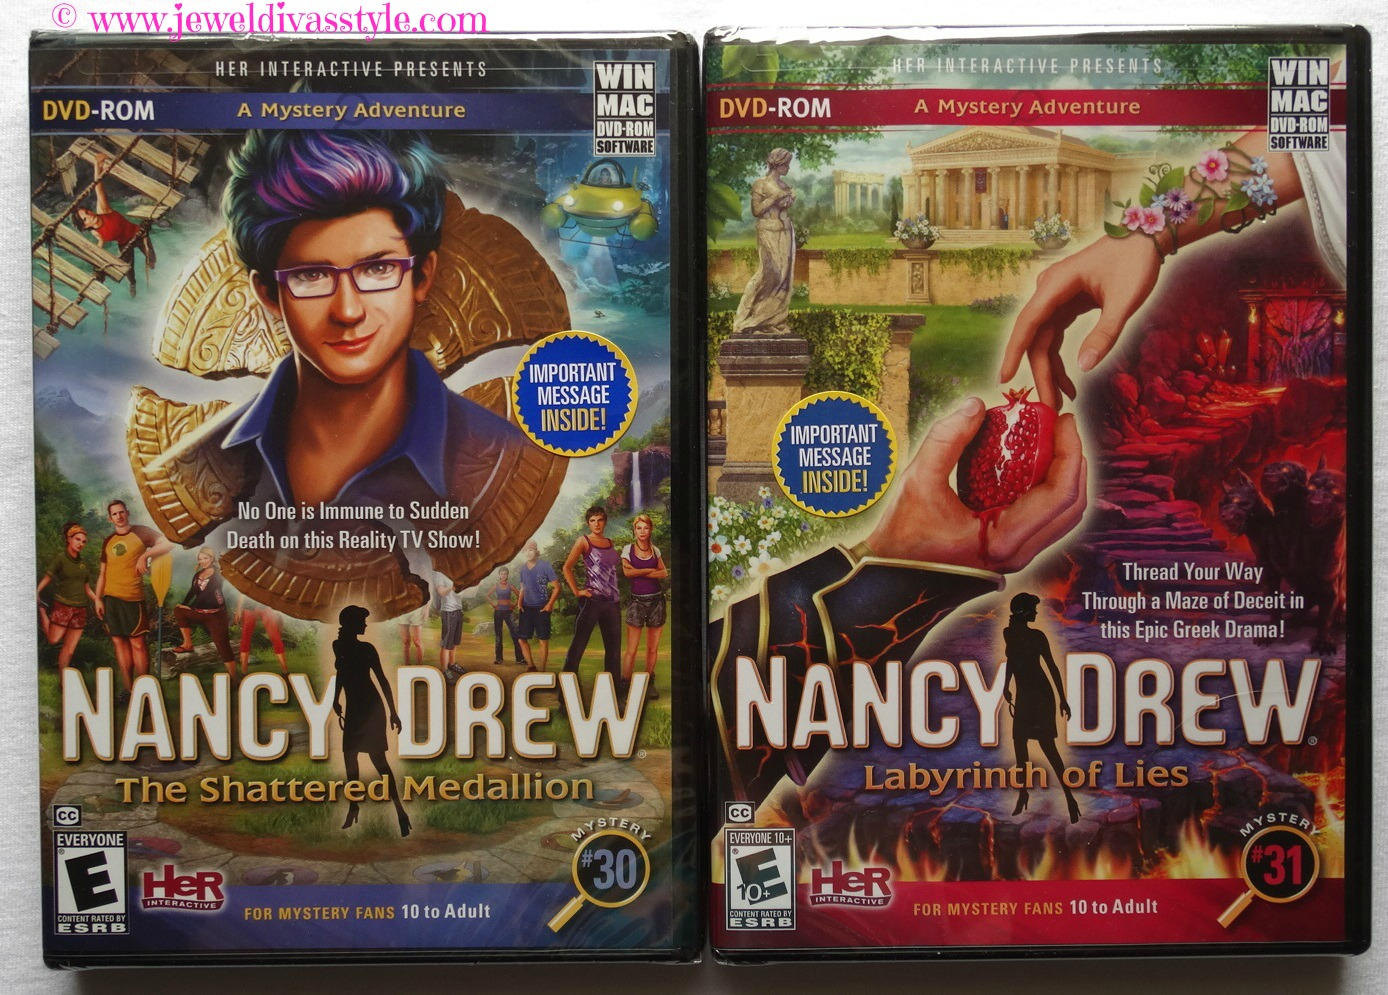 JDS - NANCY DREW GAMES